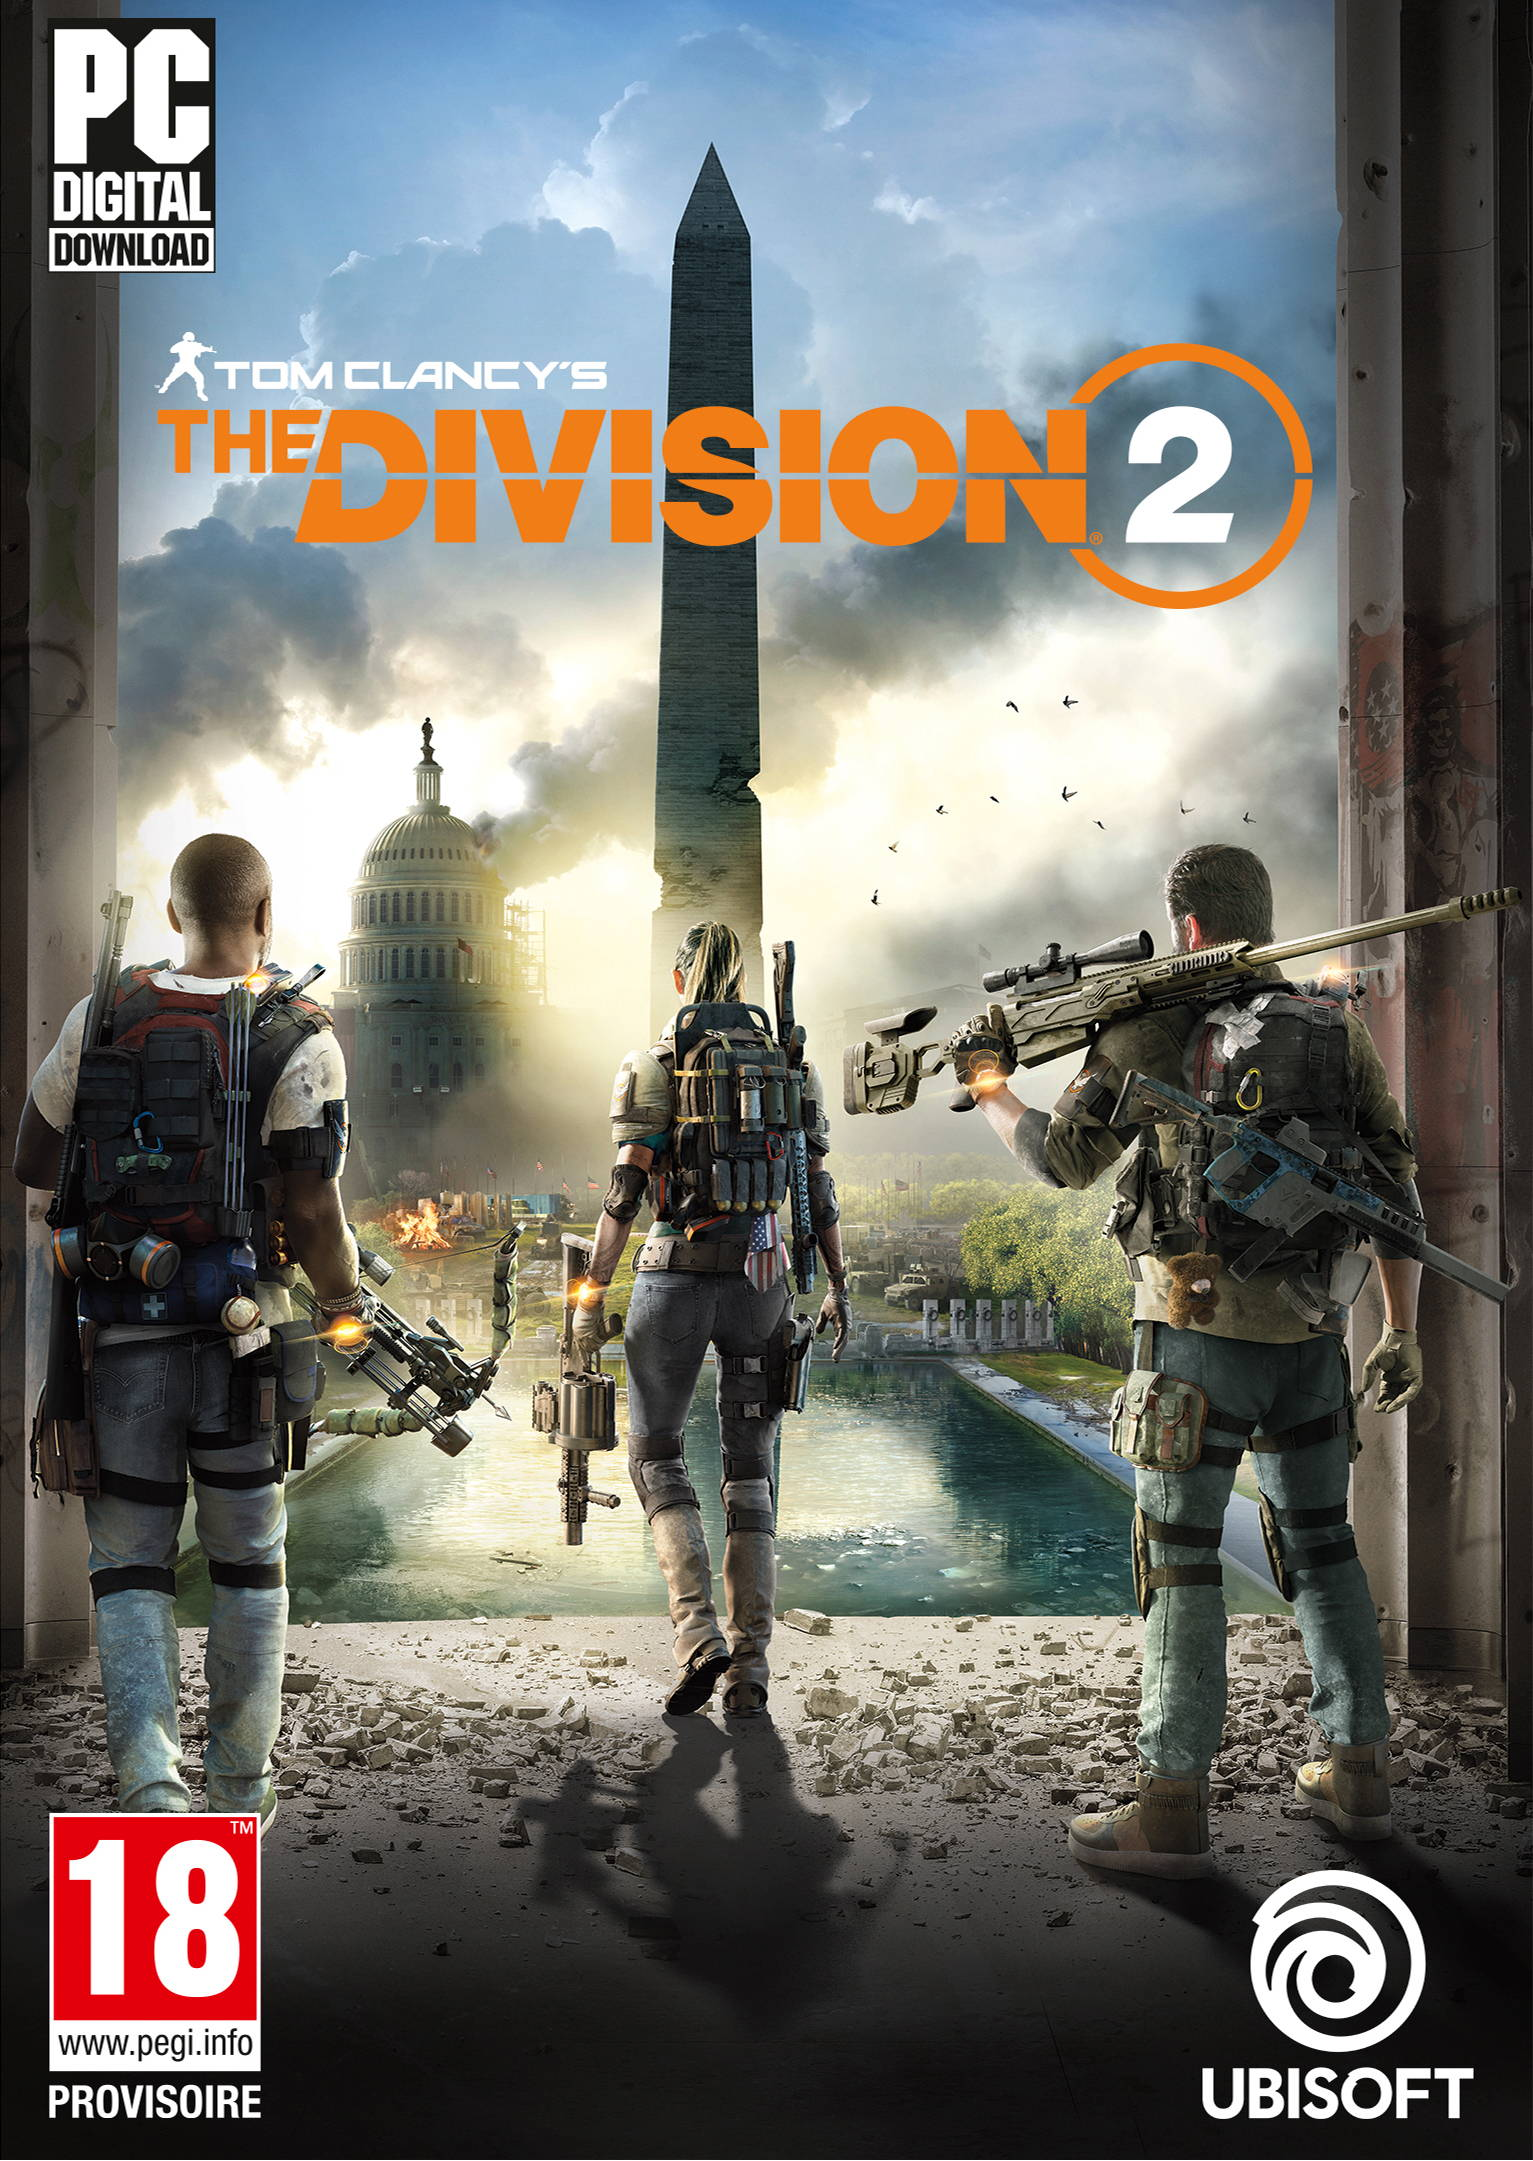 tomclancysthedivision2_e318images2_0007